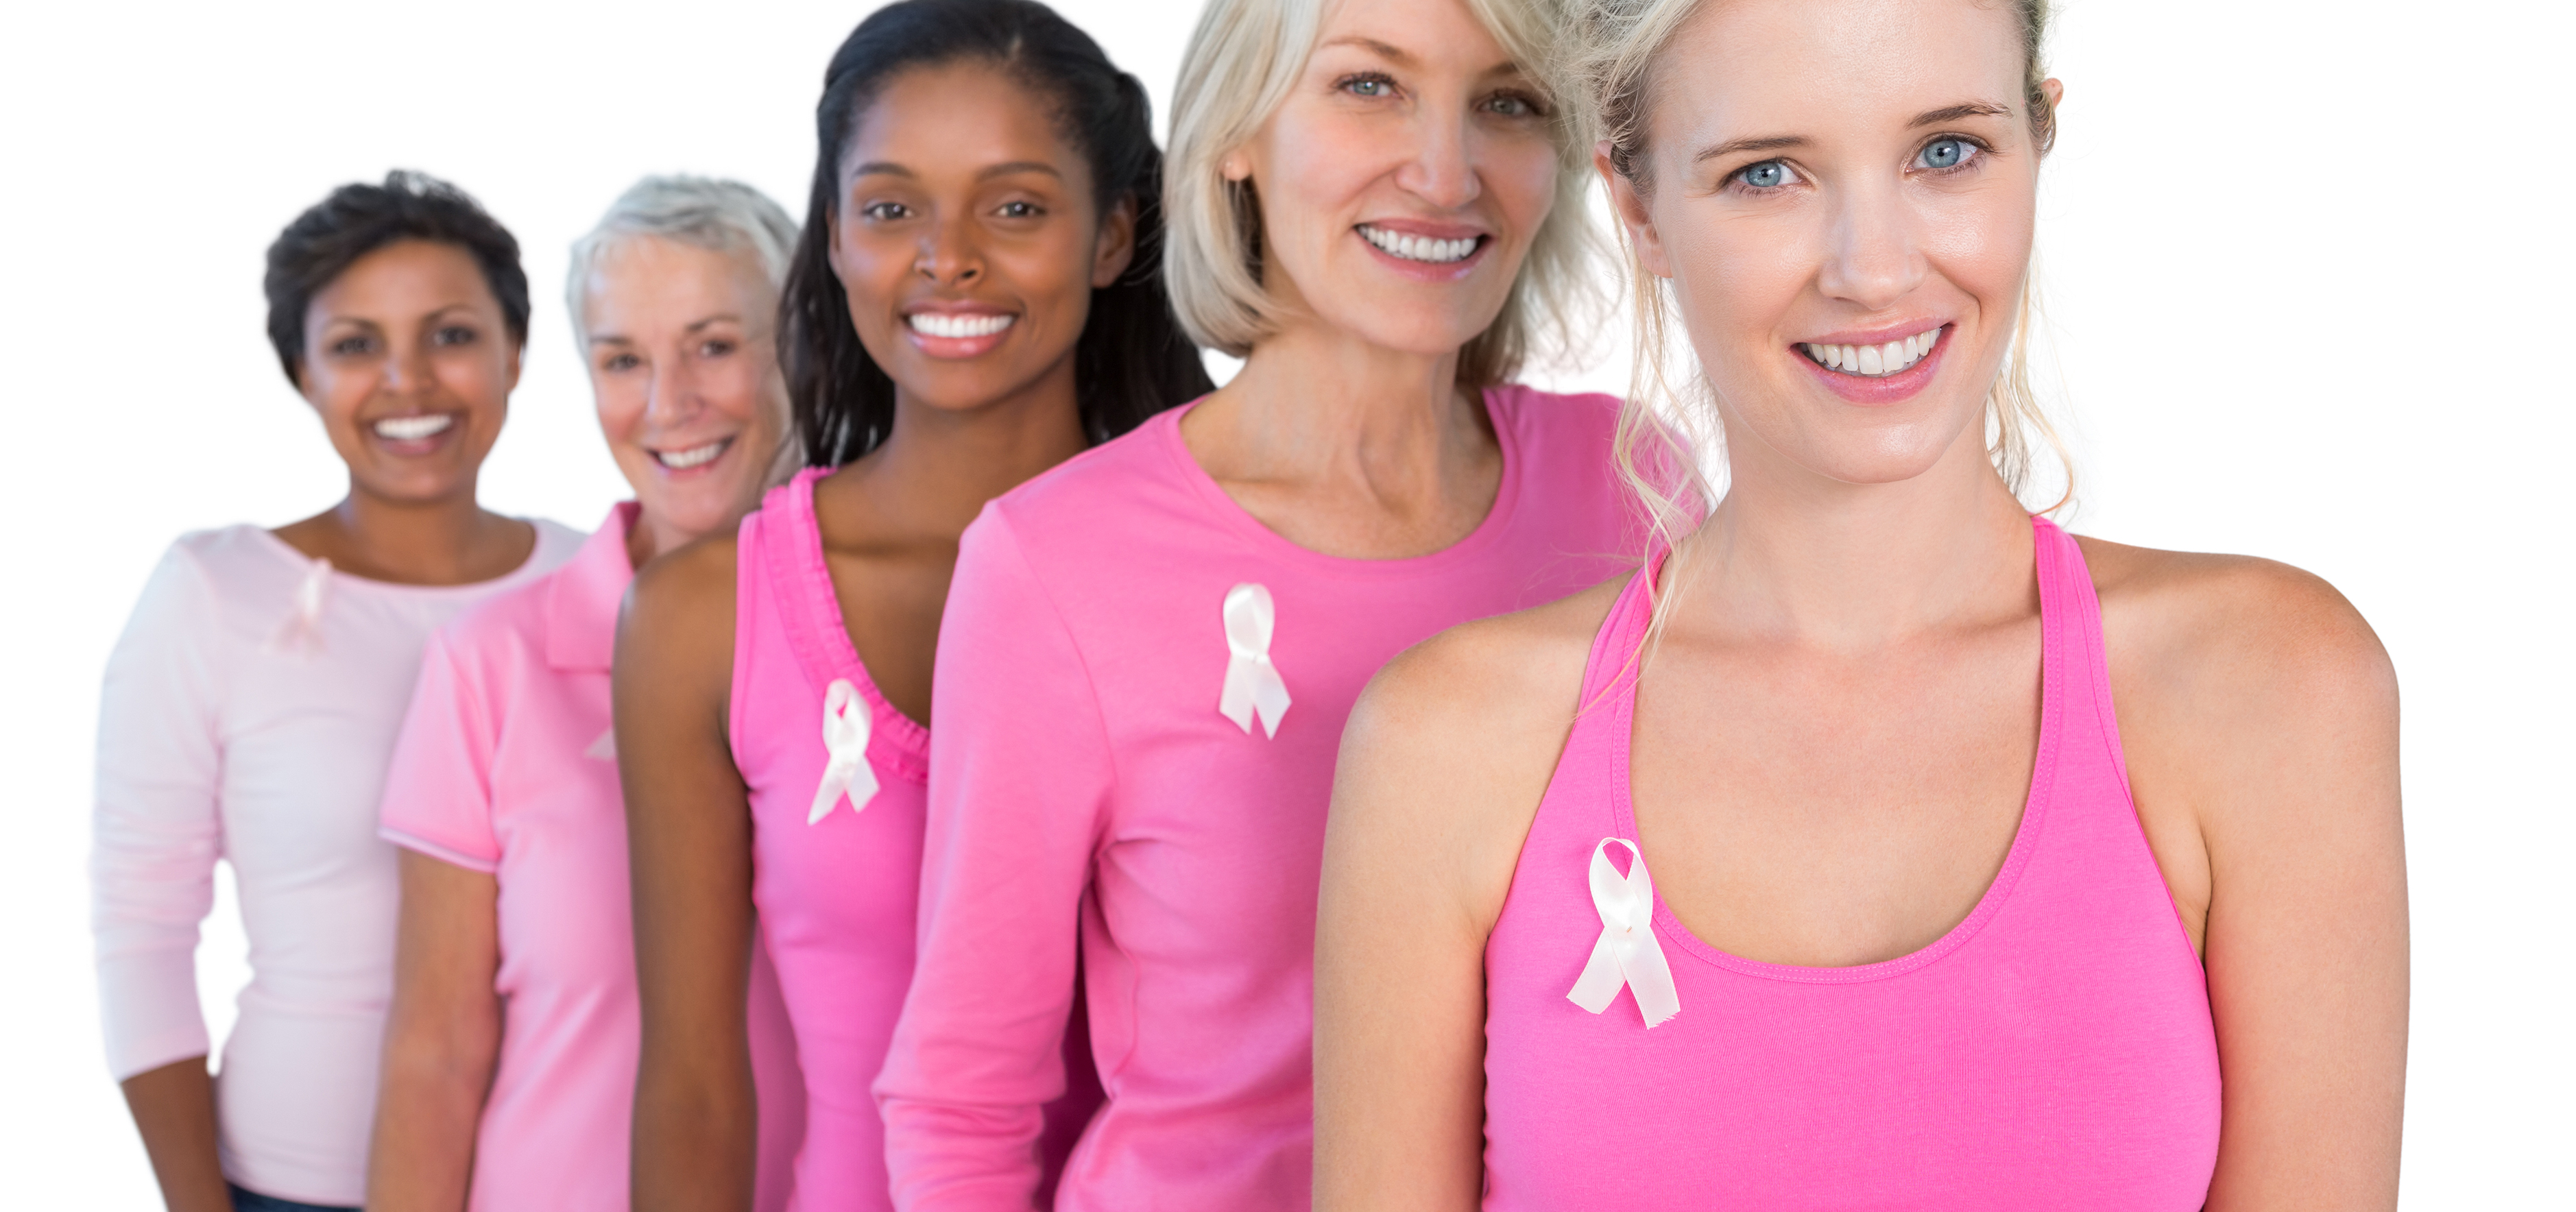 Women promoting breast cancer awareness